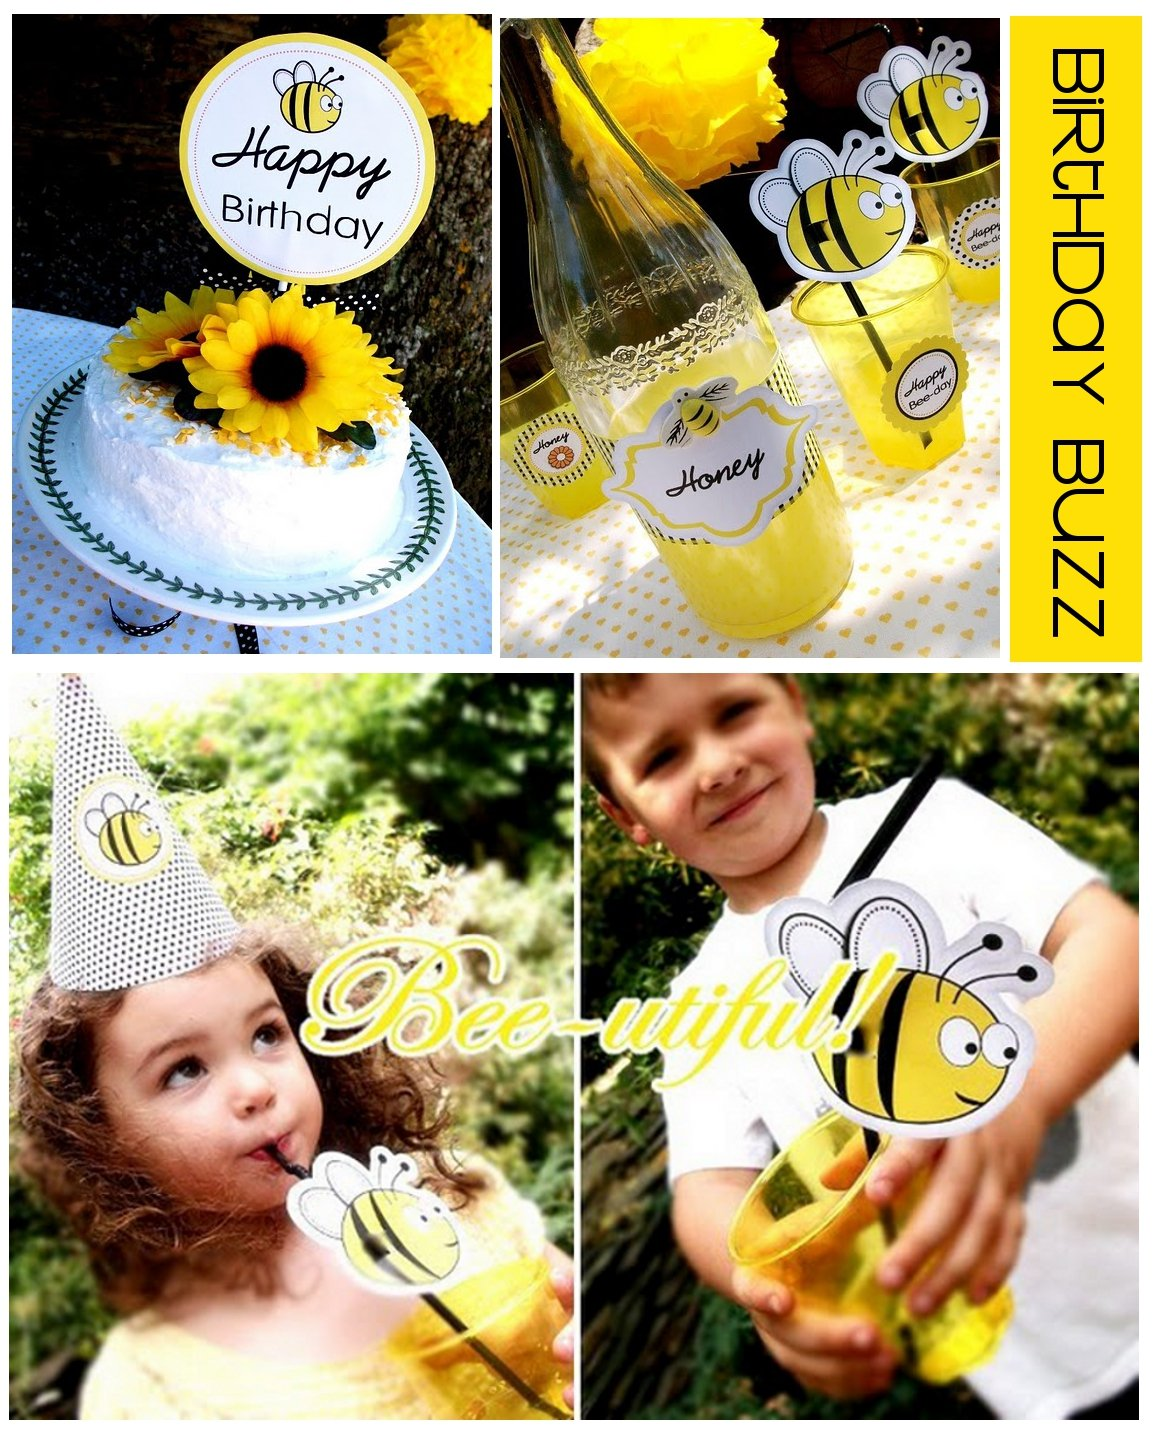 Bumble Bee Party Ideas Birthdays Showers